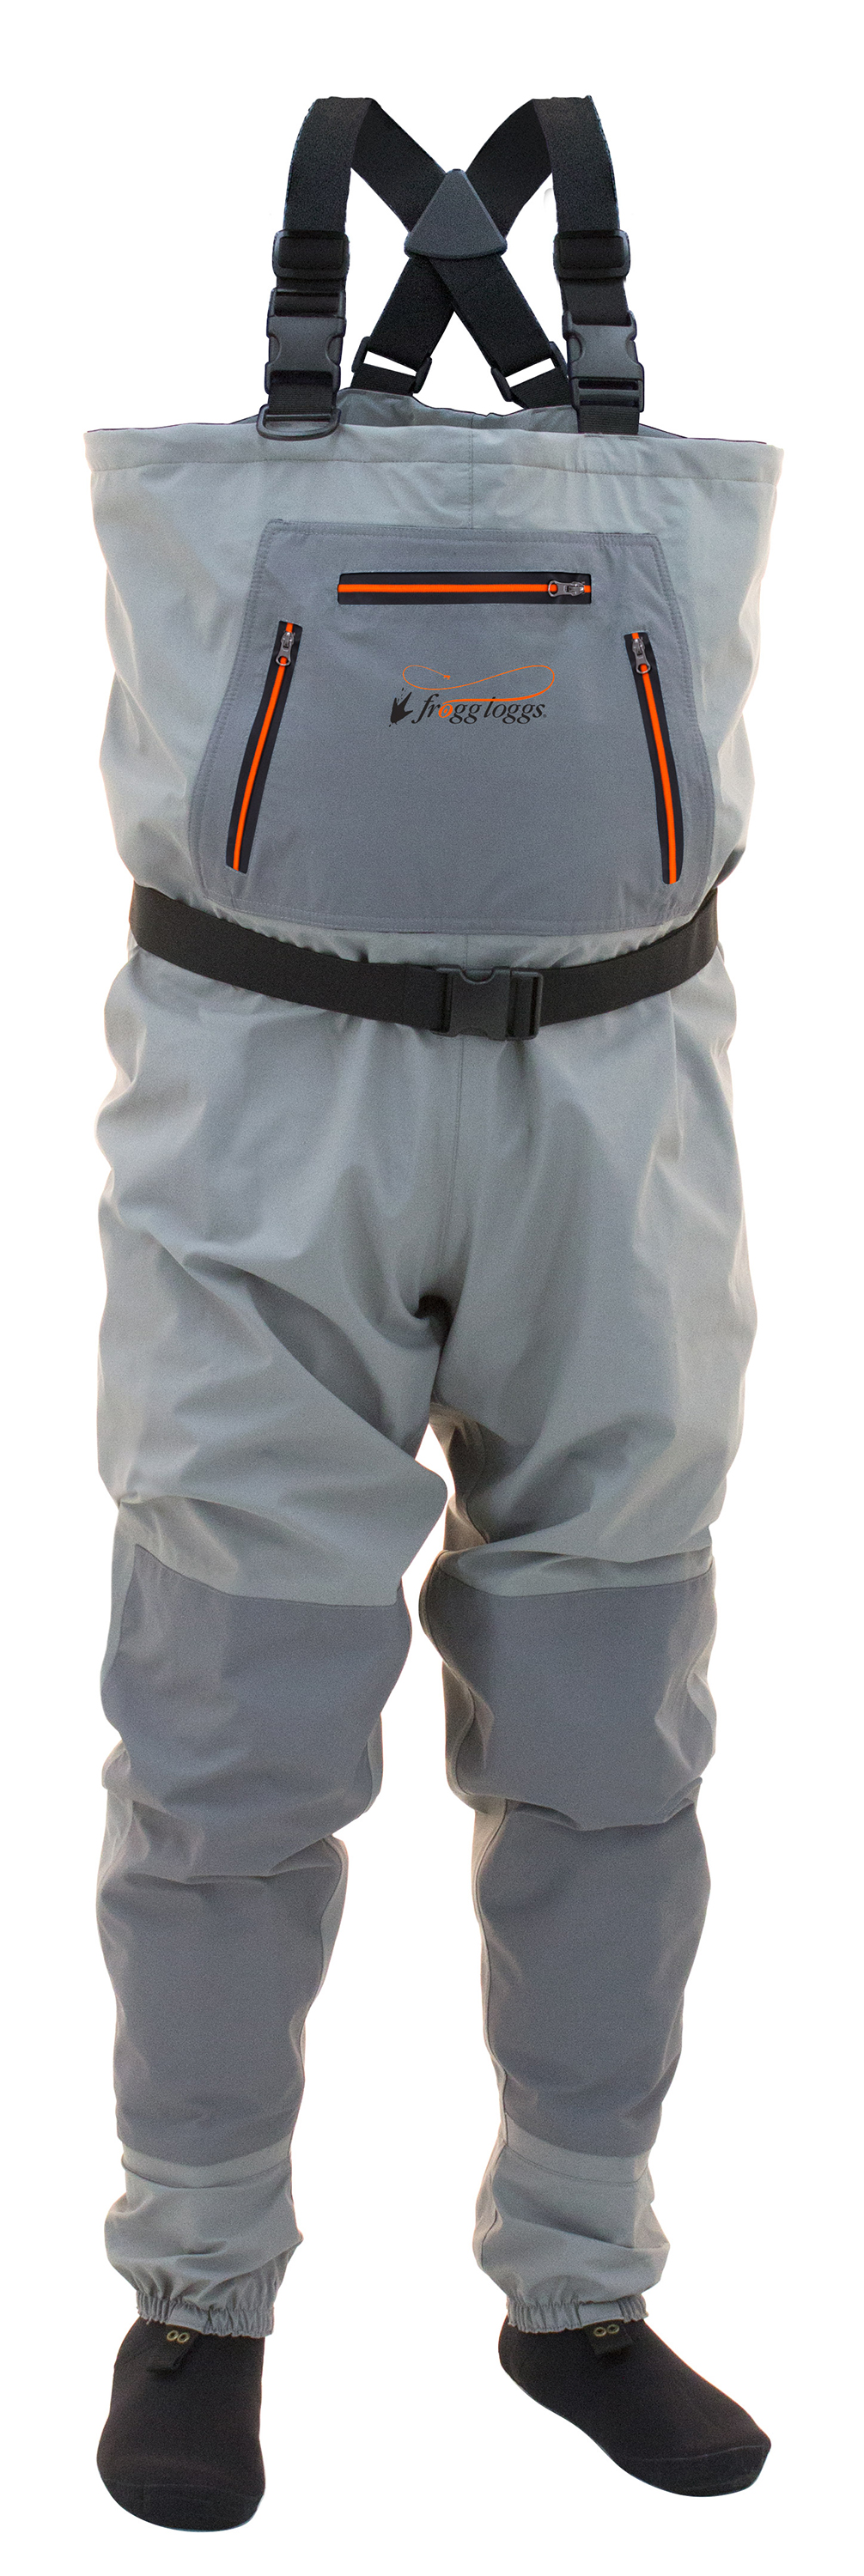 Frogg Toggs Hellbender Youth Stockingfoot Chest Waders | Large thumbnail